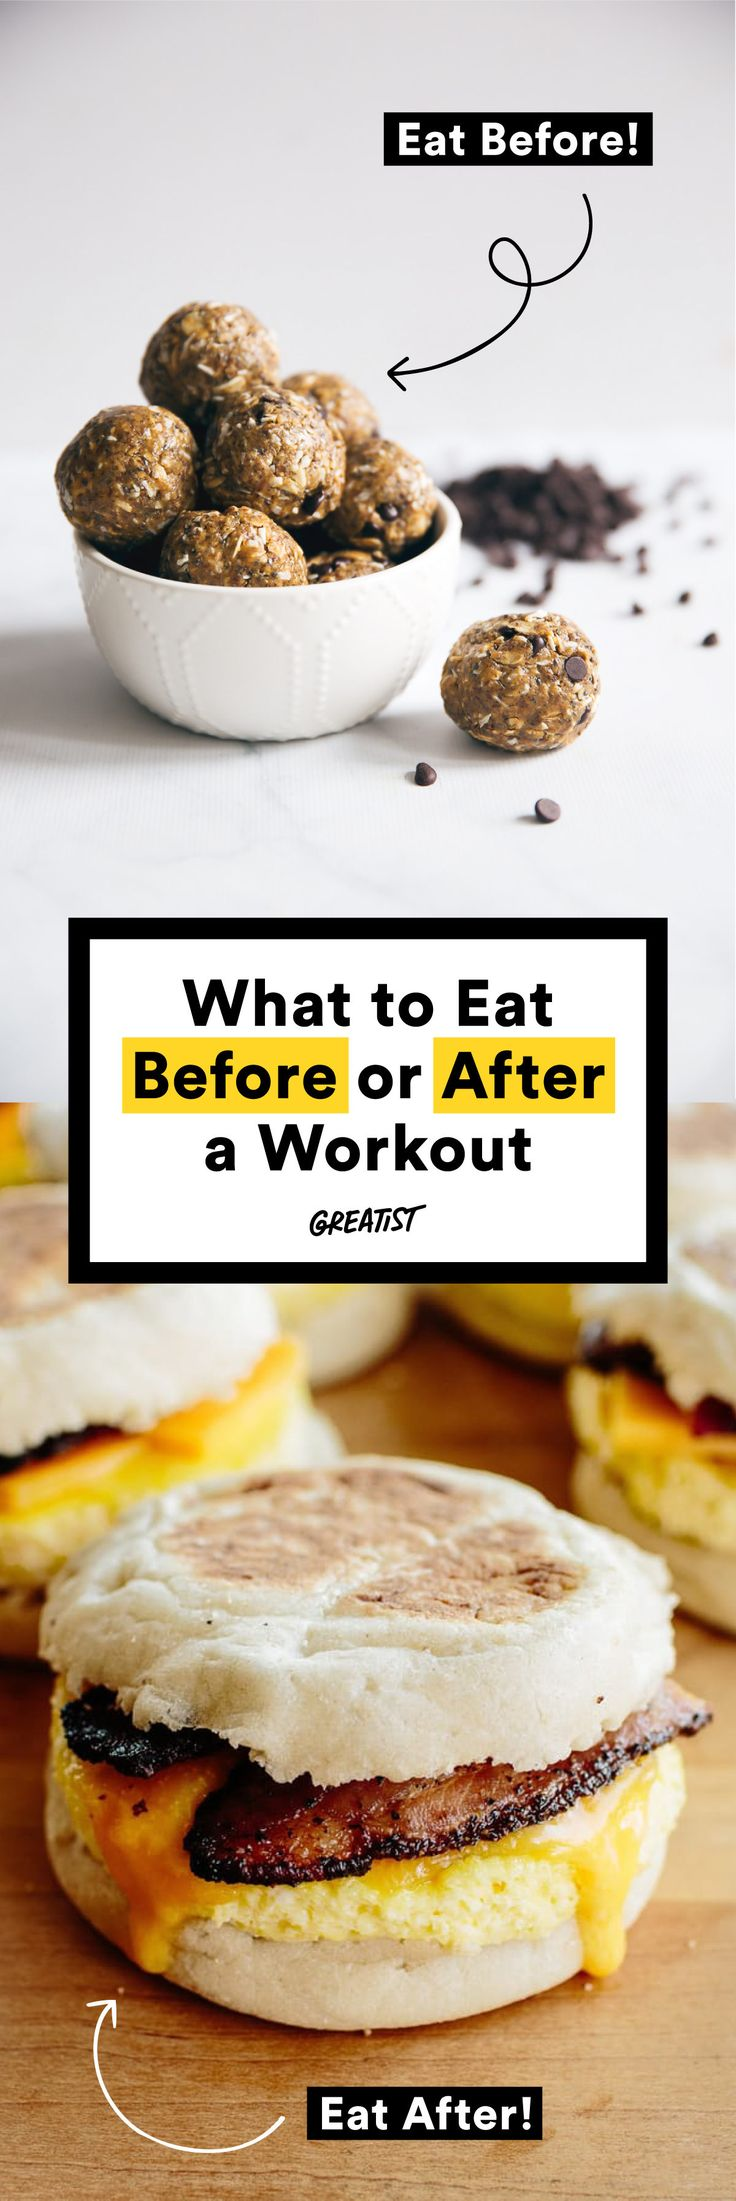 A full meal isn't always necessary. These simple snack recipes hit the spot. #greatist https://greatist.com/fitness/cable-crossover-how-to-use-it-correctly